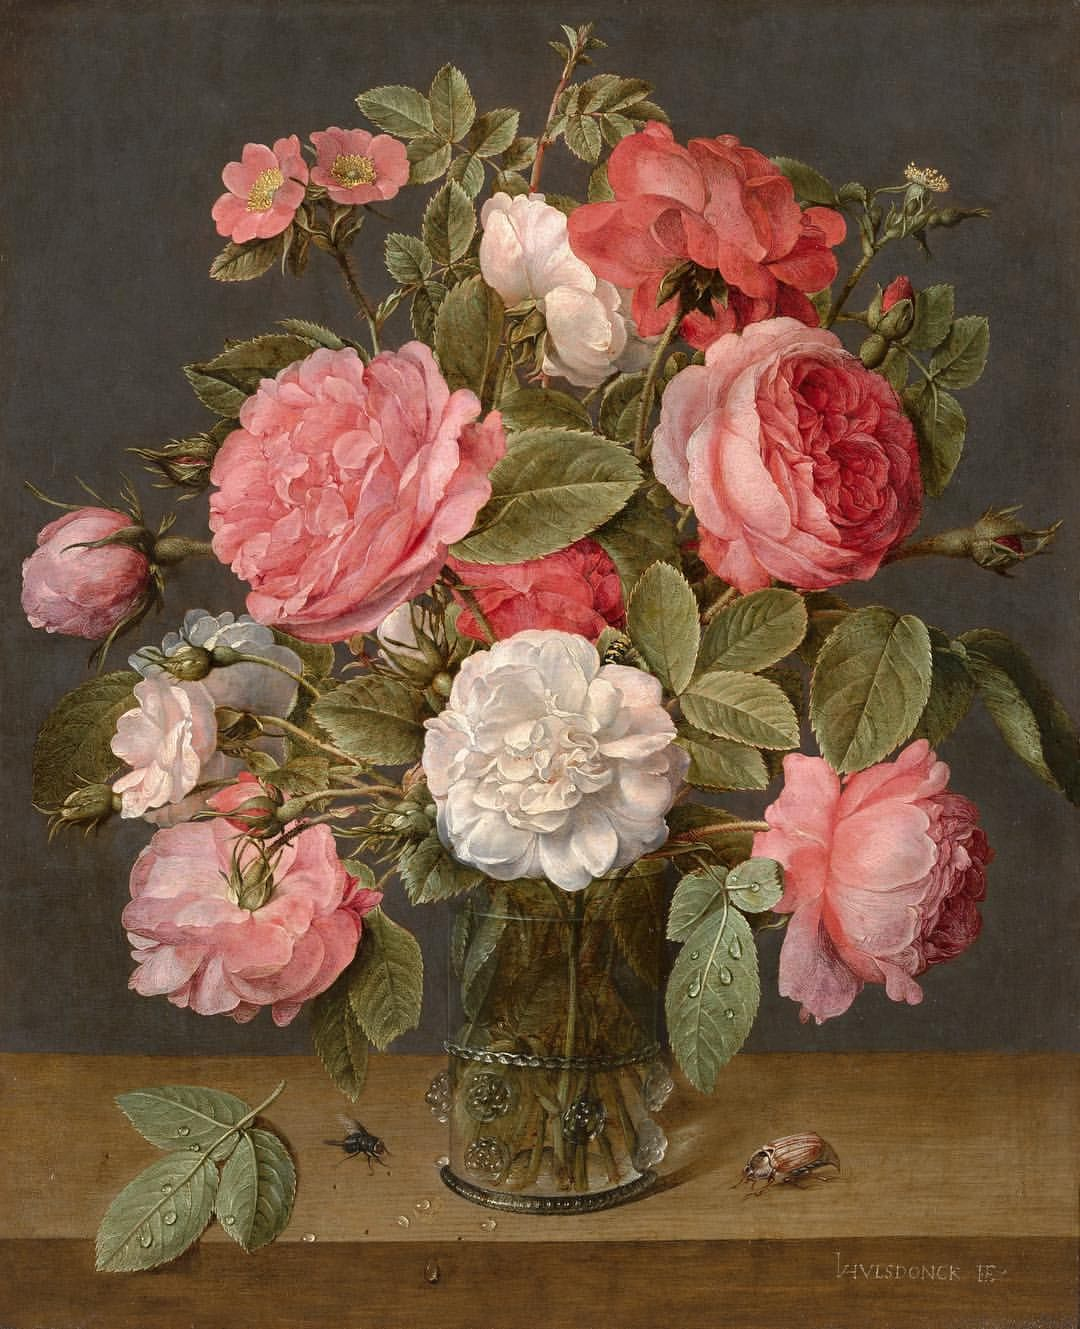 Jacob van hulsdonck 1640 1645 mauritshuis mauritshuismuseum jacob van hulsdonck 1640 1645 mauritshuis mauritshuismuseum instagram the most beautiful bouquet of roses for mothersday izmirmasajfo